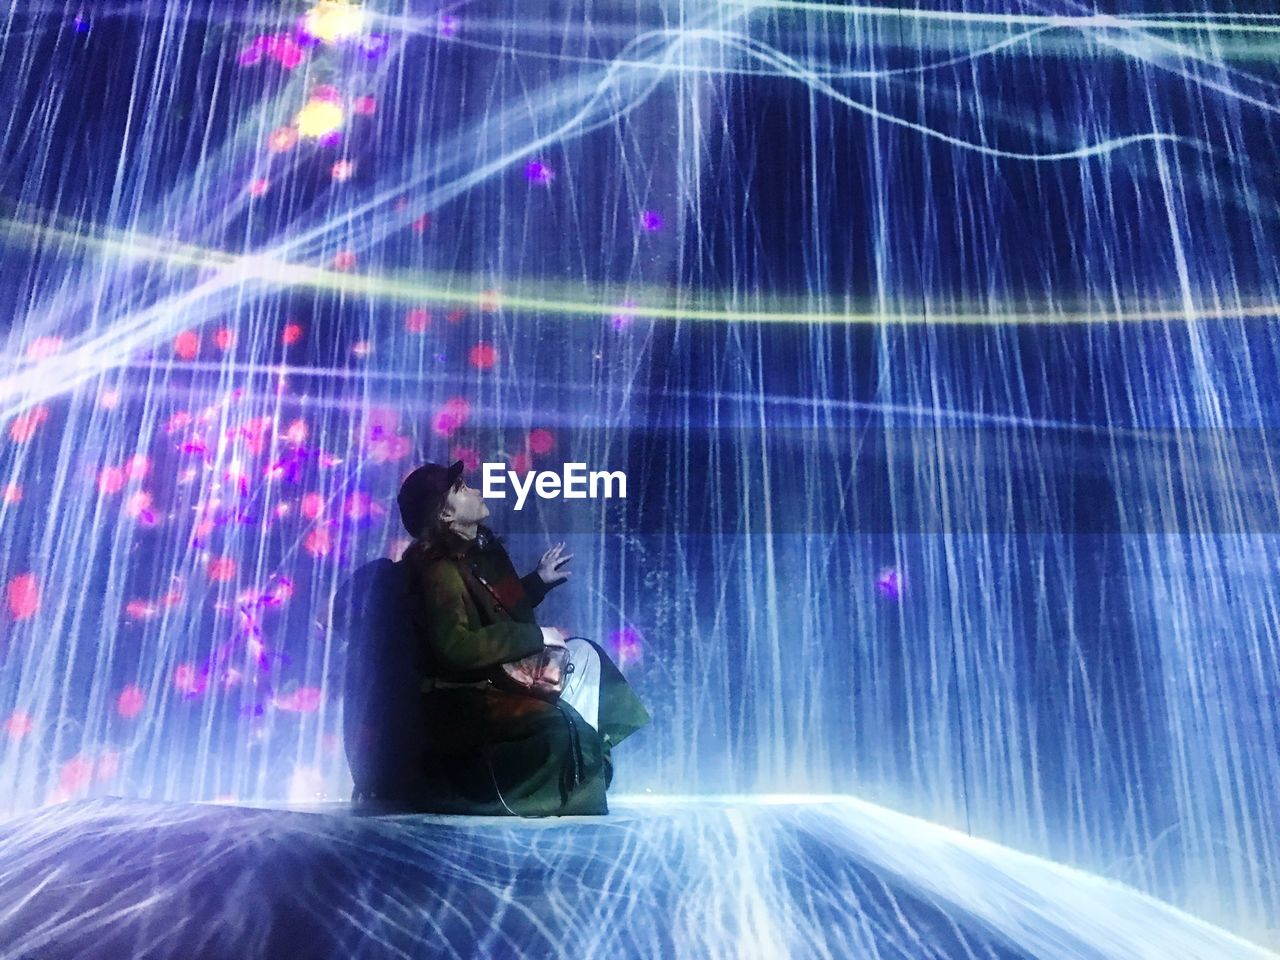 one person, illuminated, technology, long exposure, adult, indoors, men, motion, light - natural phenomenon, three quarter length, light beam, night, nature, skill, fuel and power generation, sitting, blurred motion, laser, digital composite